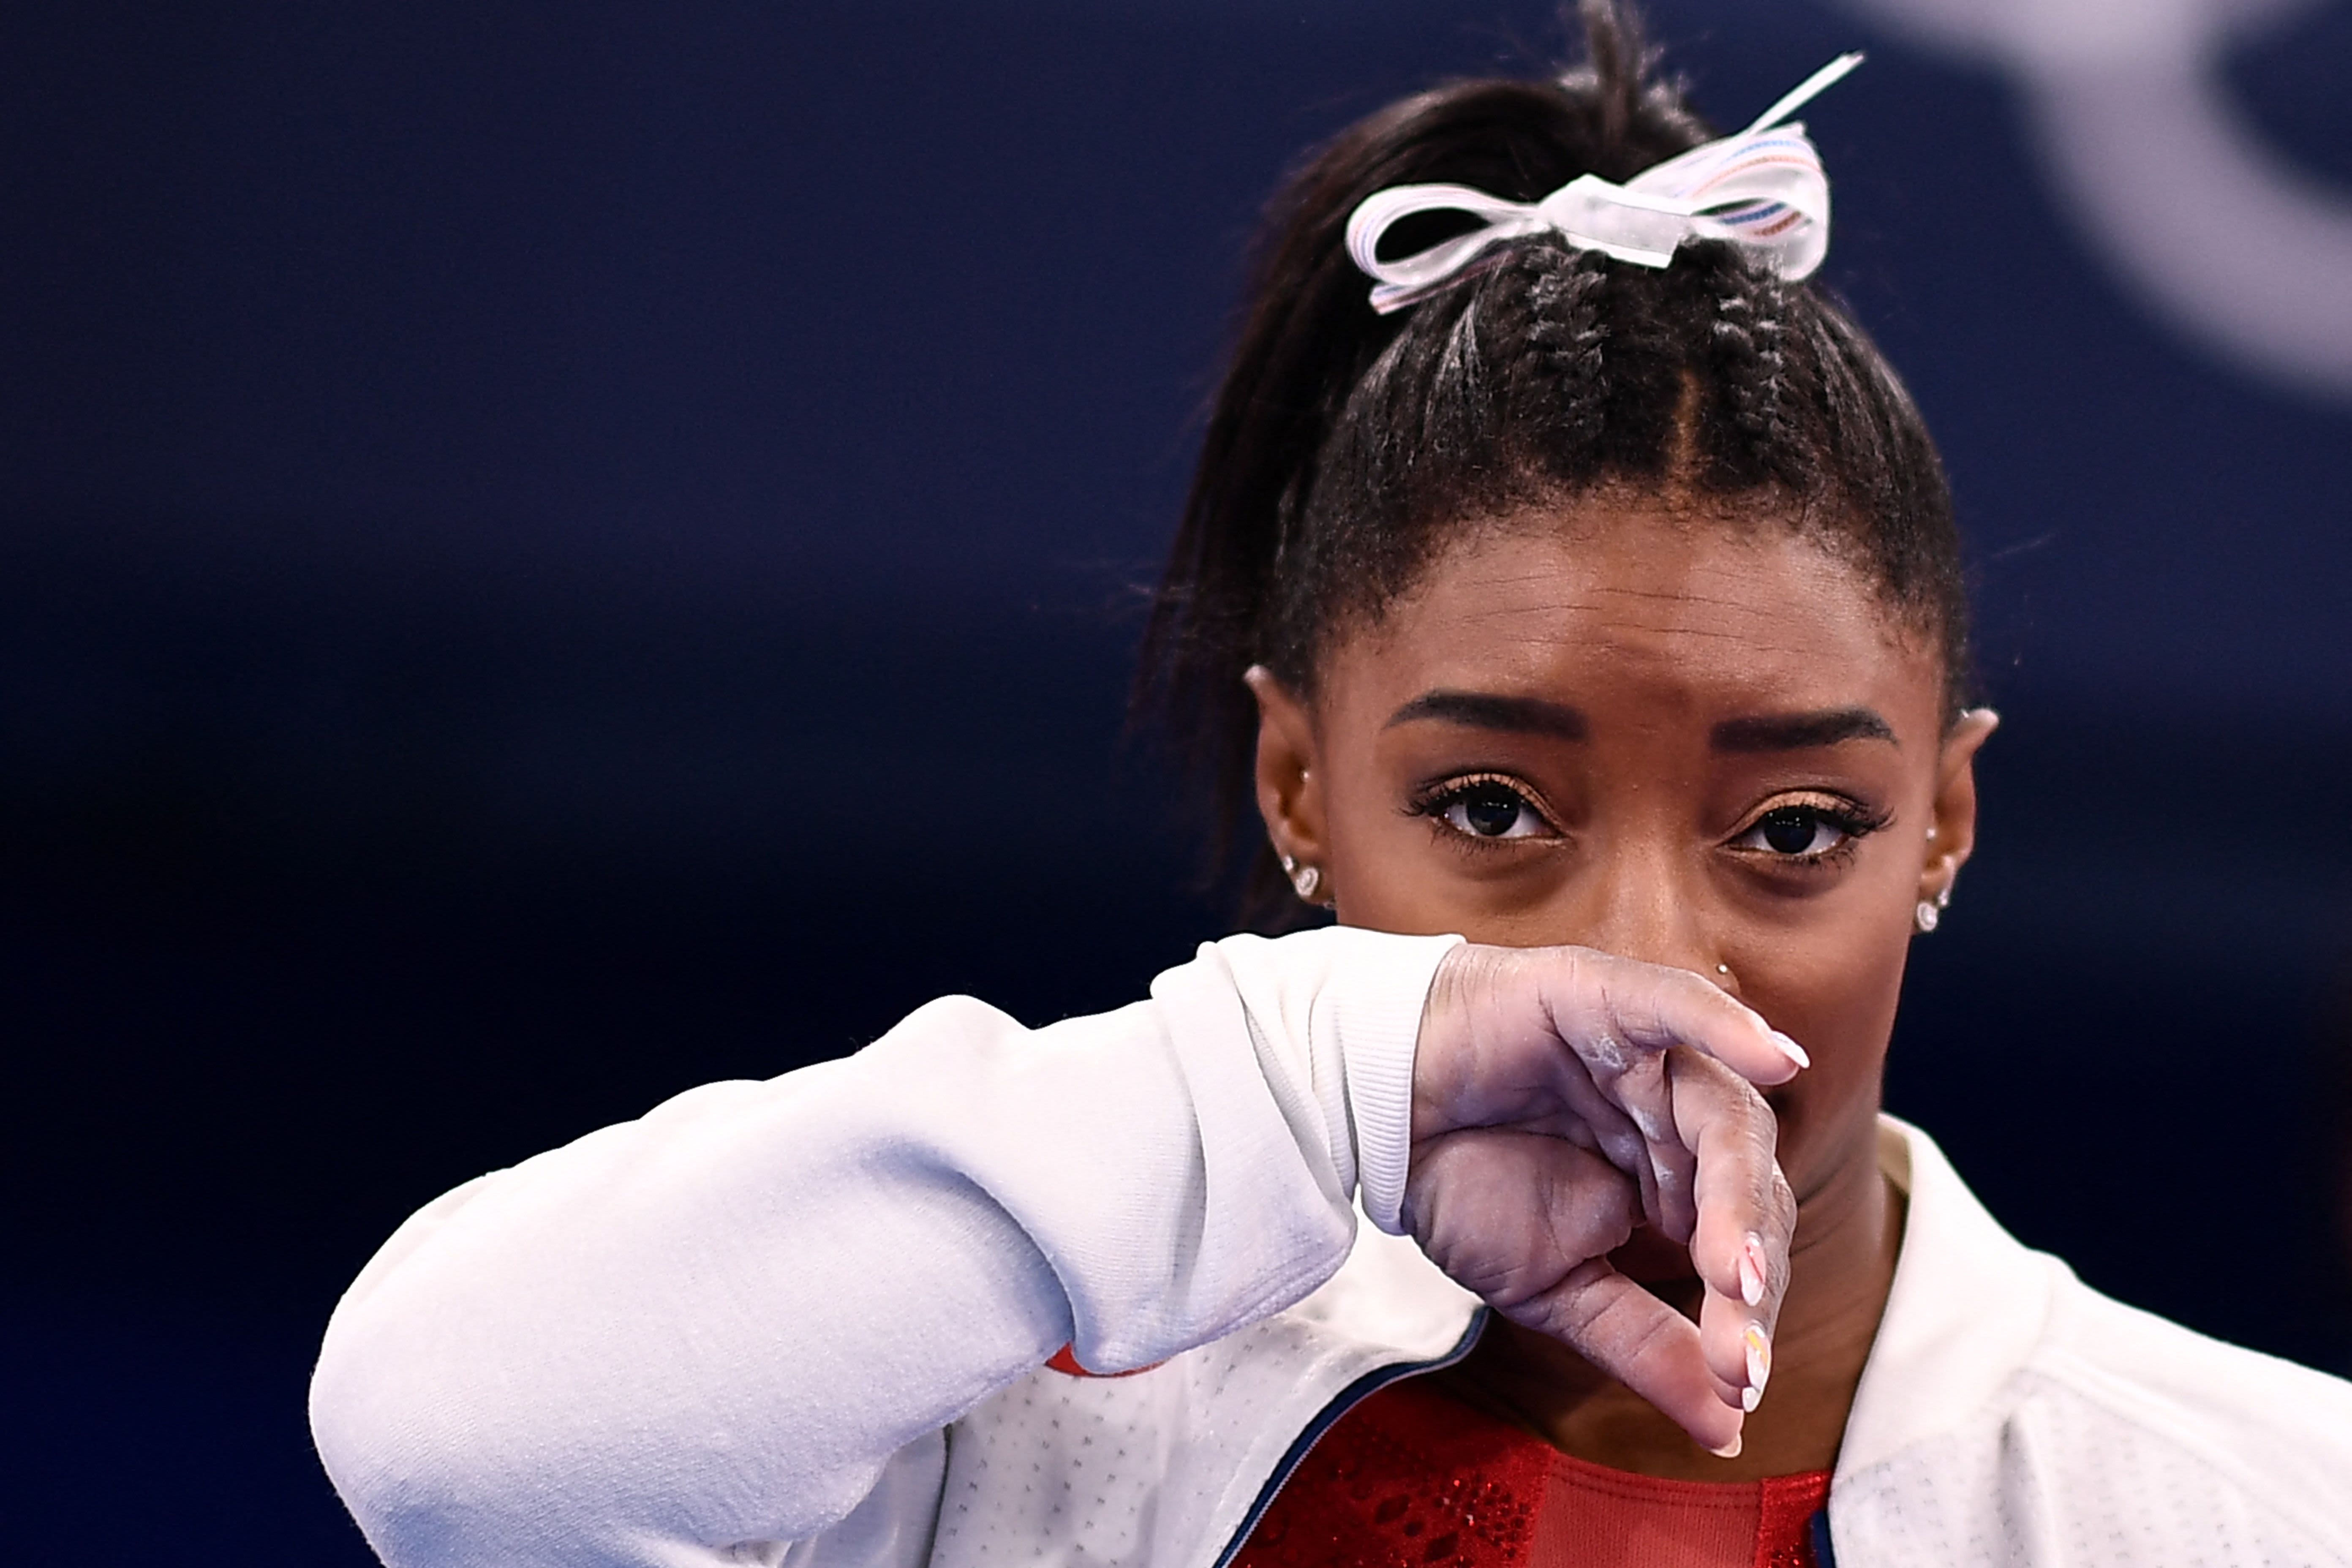 Simone Biles withdraws from individual all-around gymnastics final at Tokyo Olympics